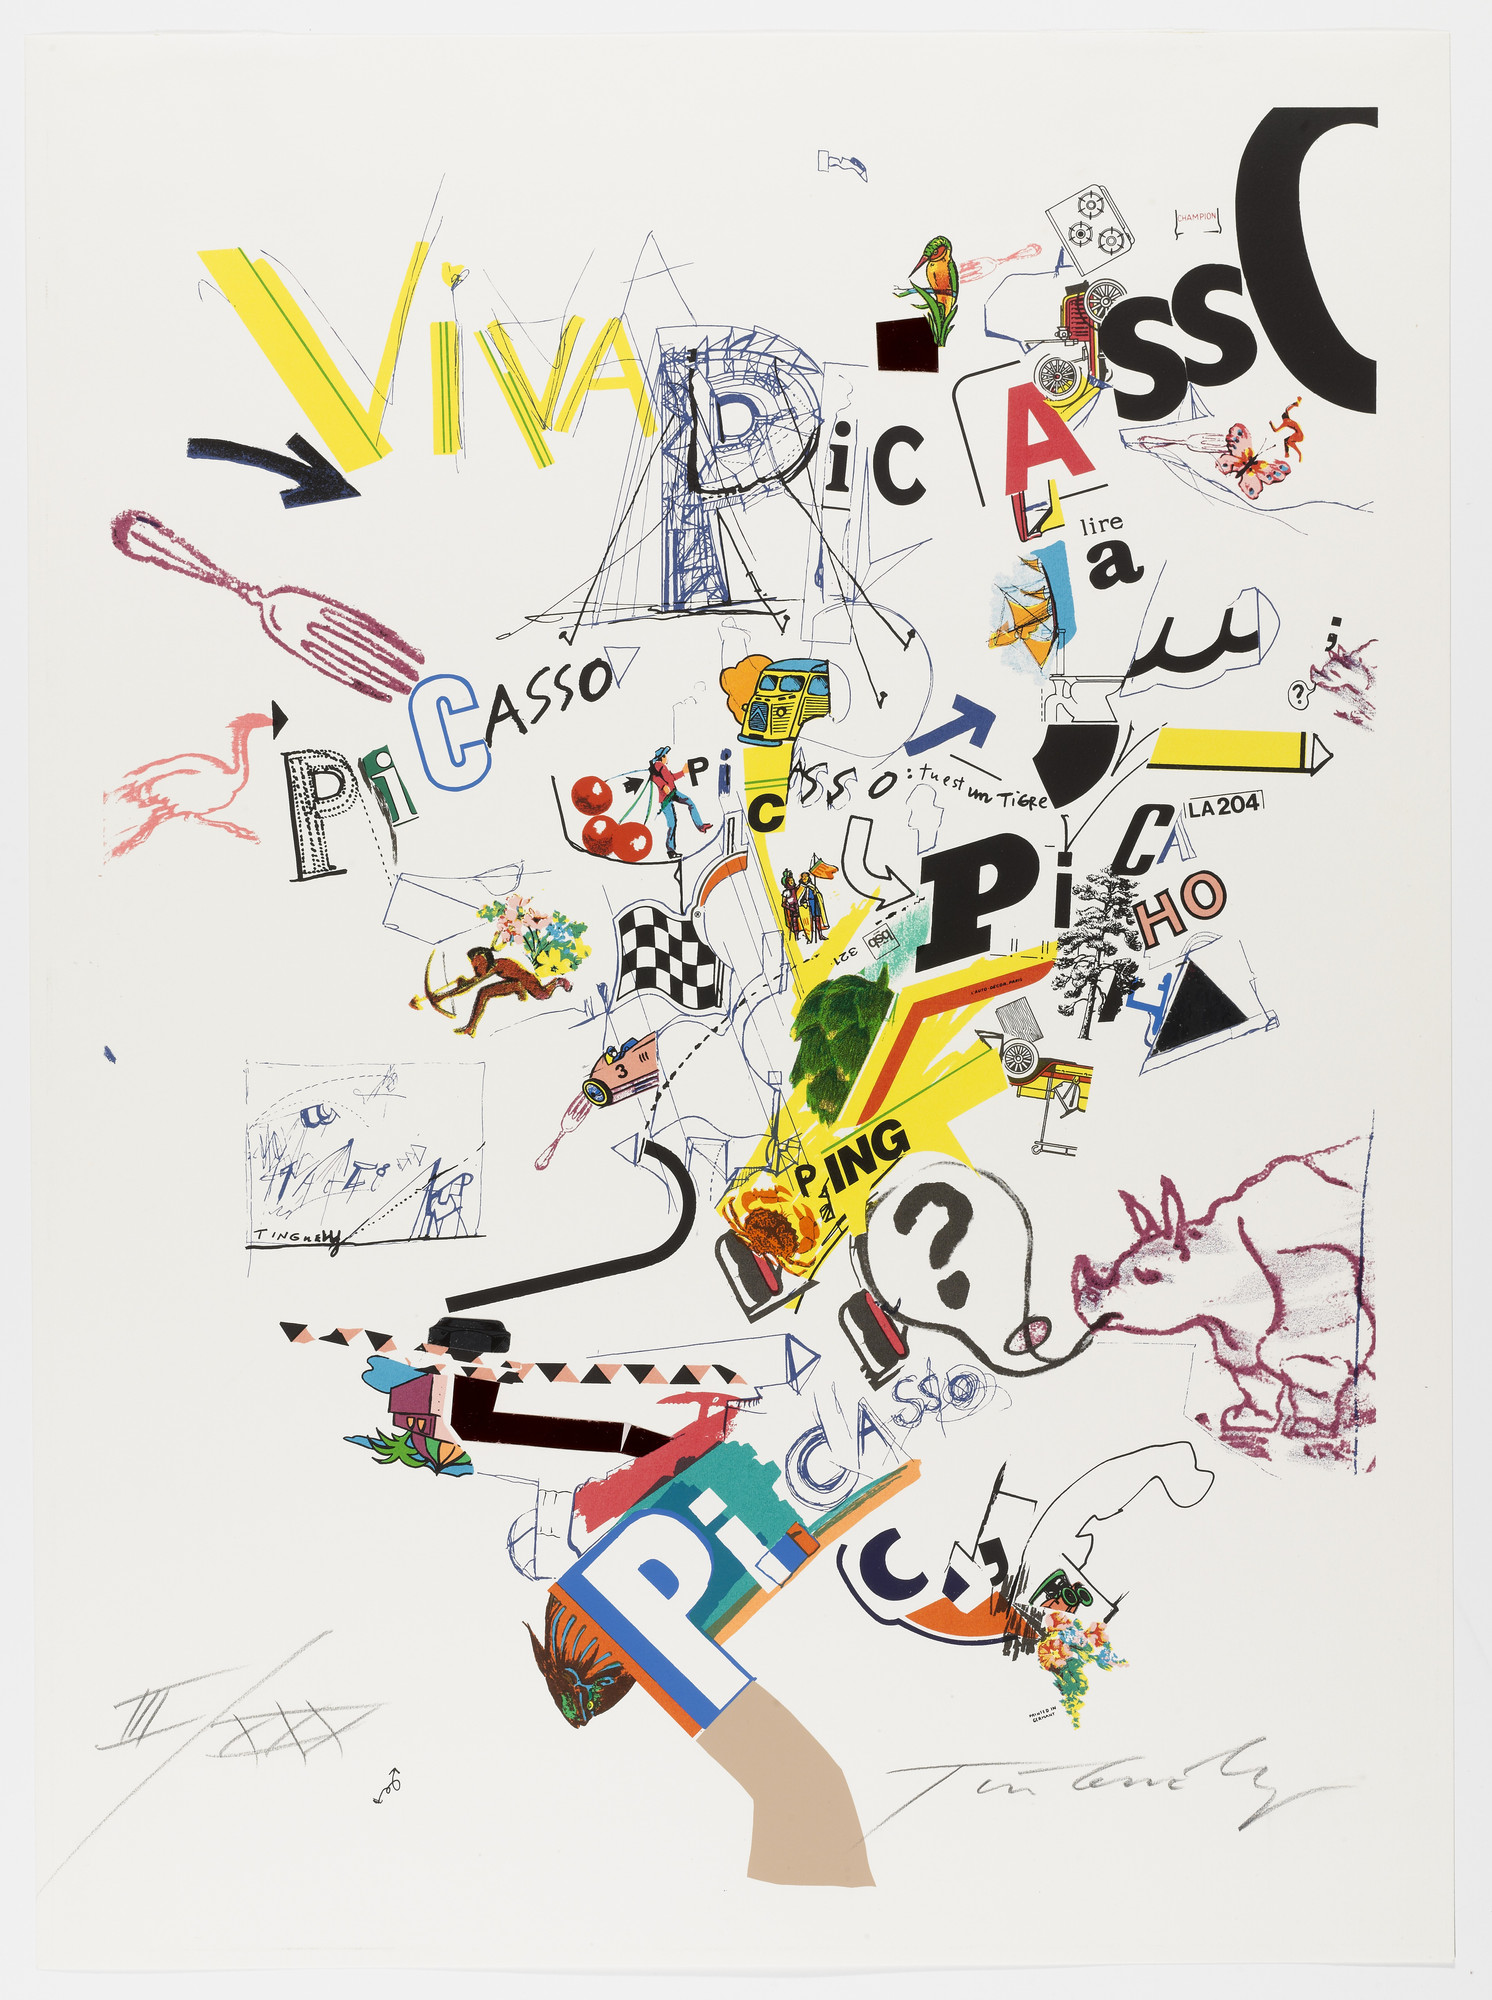 Jean Tinguely. Viva Picasso from Homage to Picasso (Hommage à Picasso). 1973